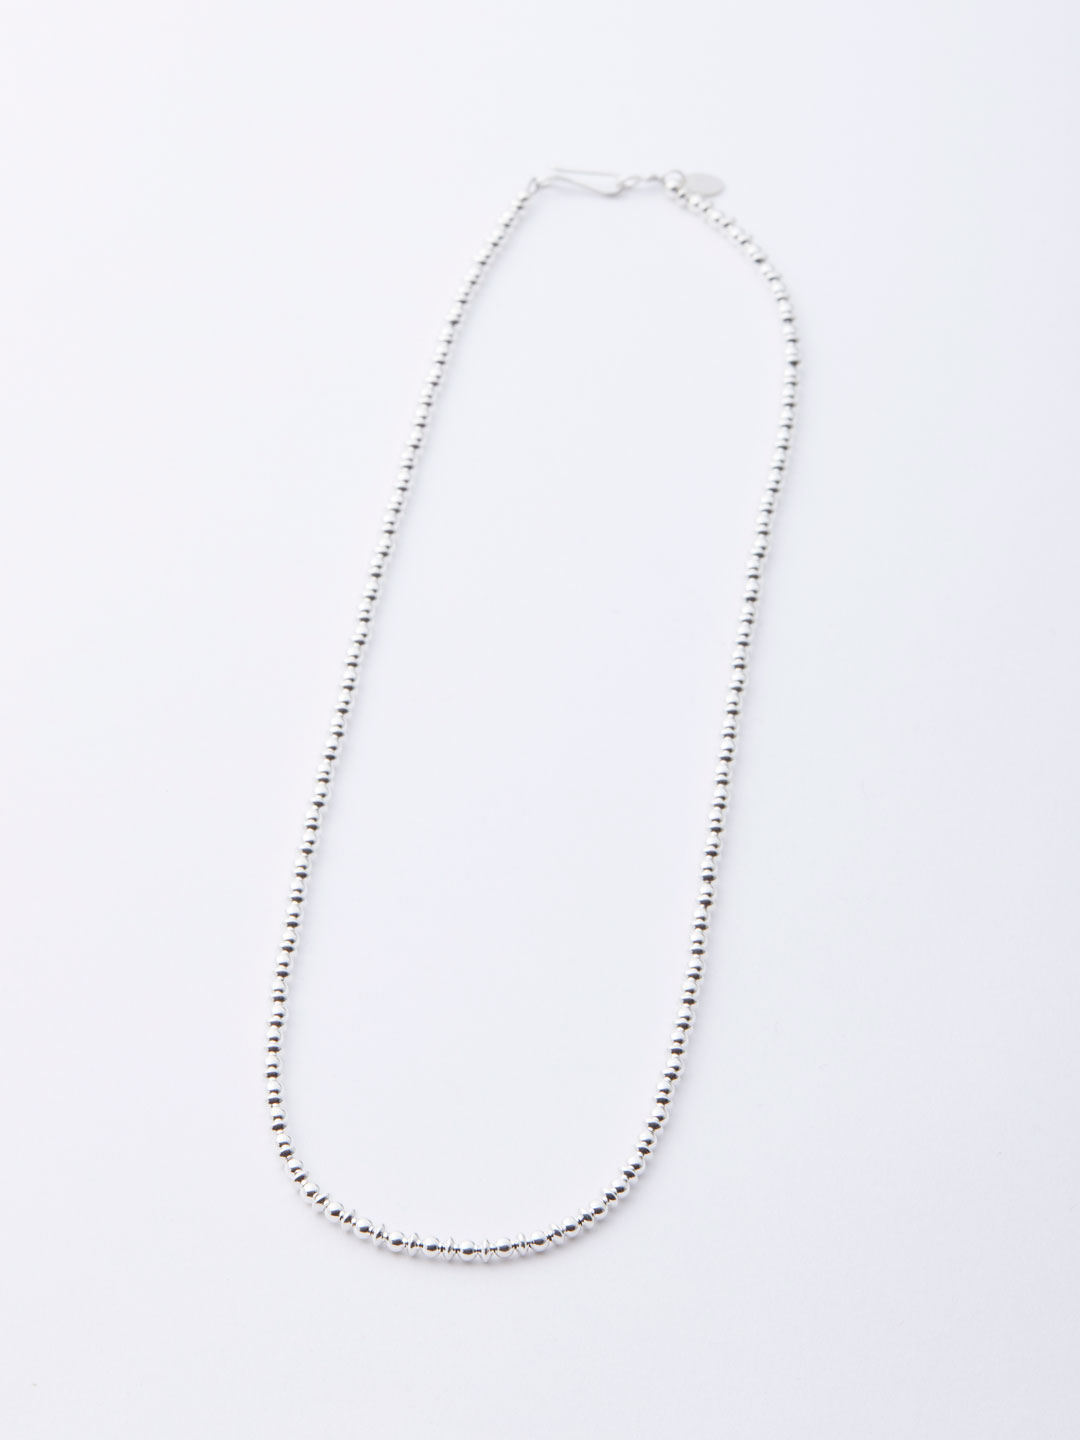 3mm Ball Chain Necklace 50cm - Silver